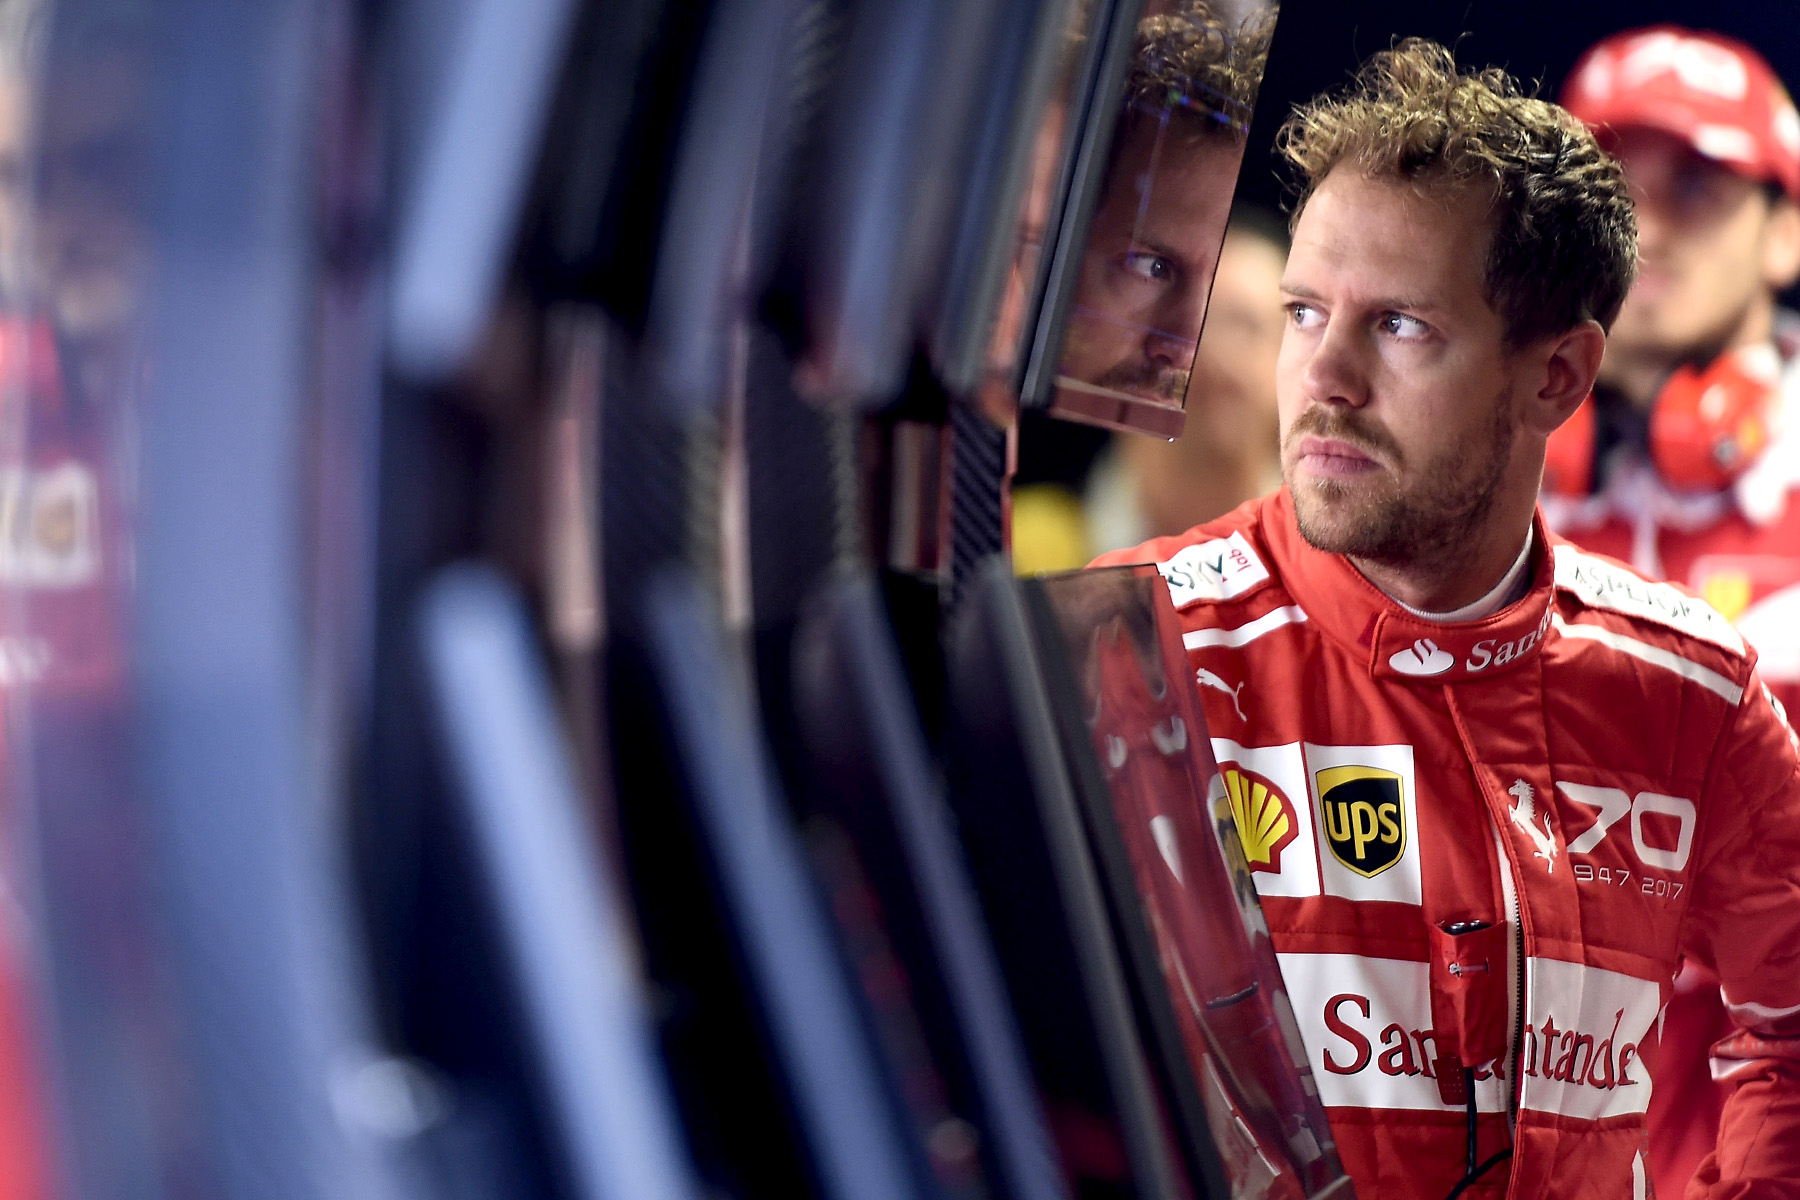 Sebastian Vettel in his garage at the 2017 Italian Grand Prix